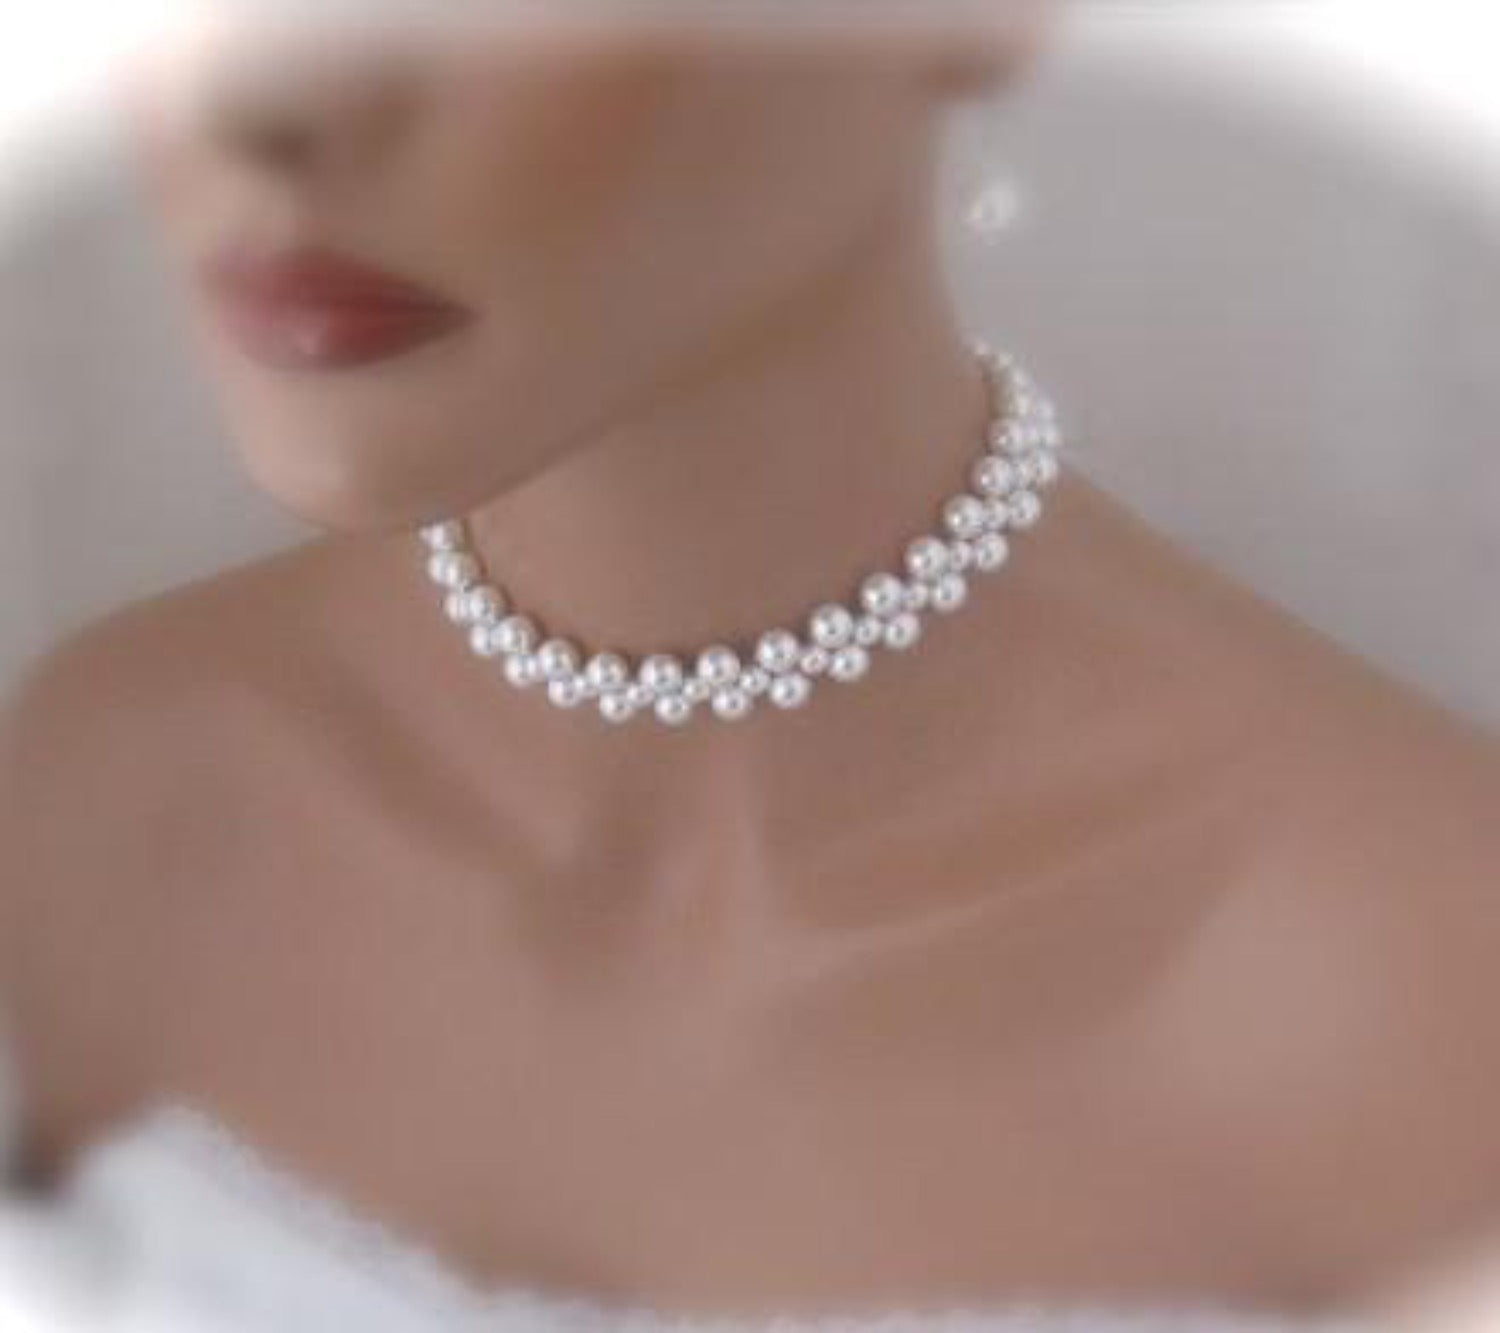 Double Strand Pearl Choker Necklace Wedding Jewelry Set Swarovski Pearl Necklace and Earrings - Clairesbridal